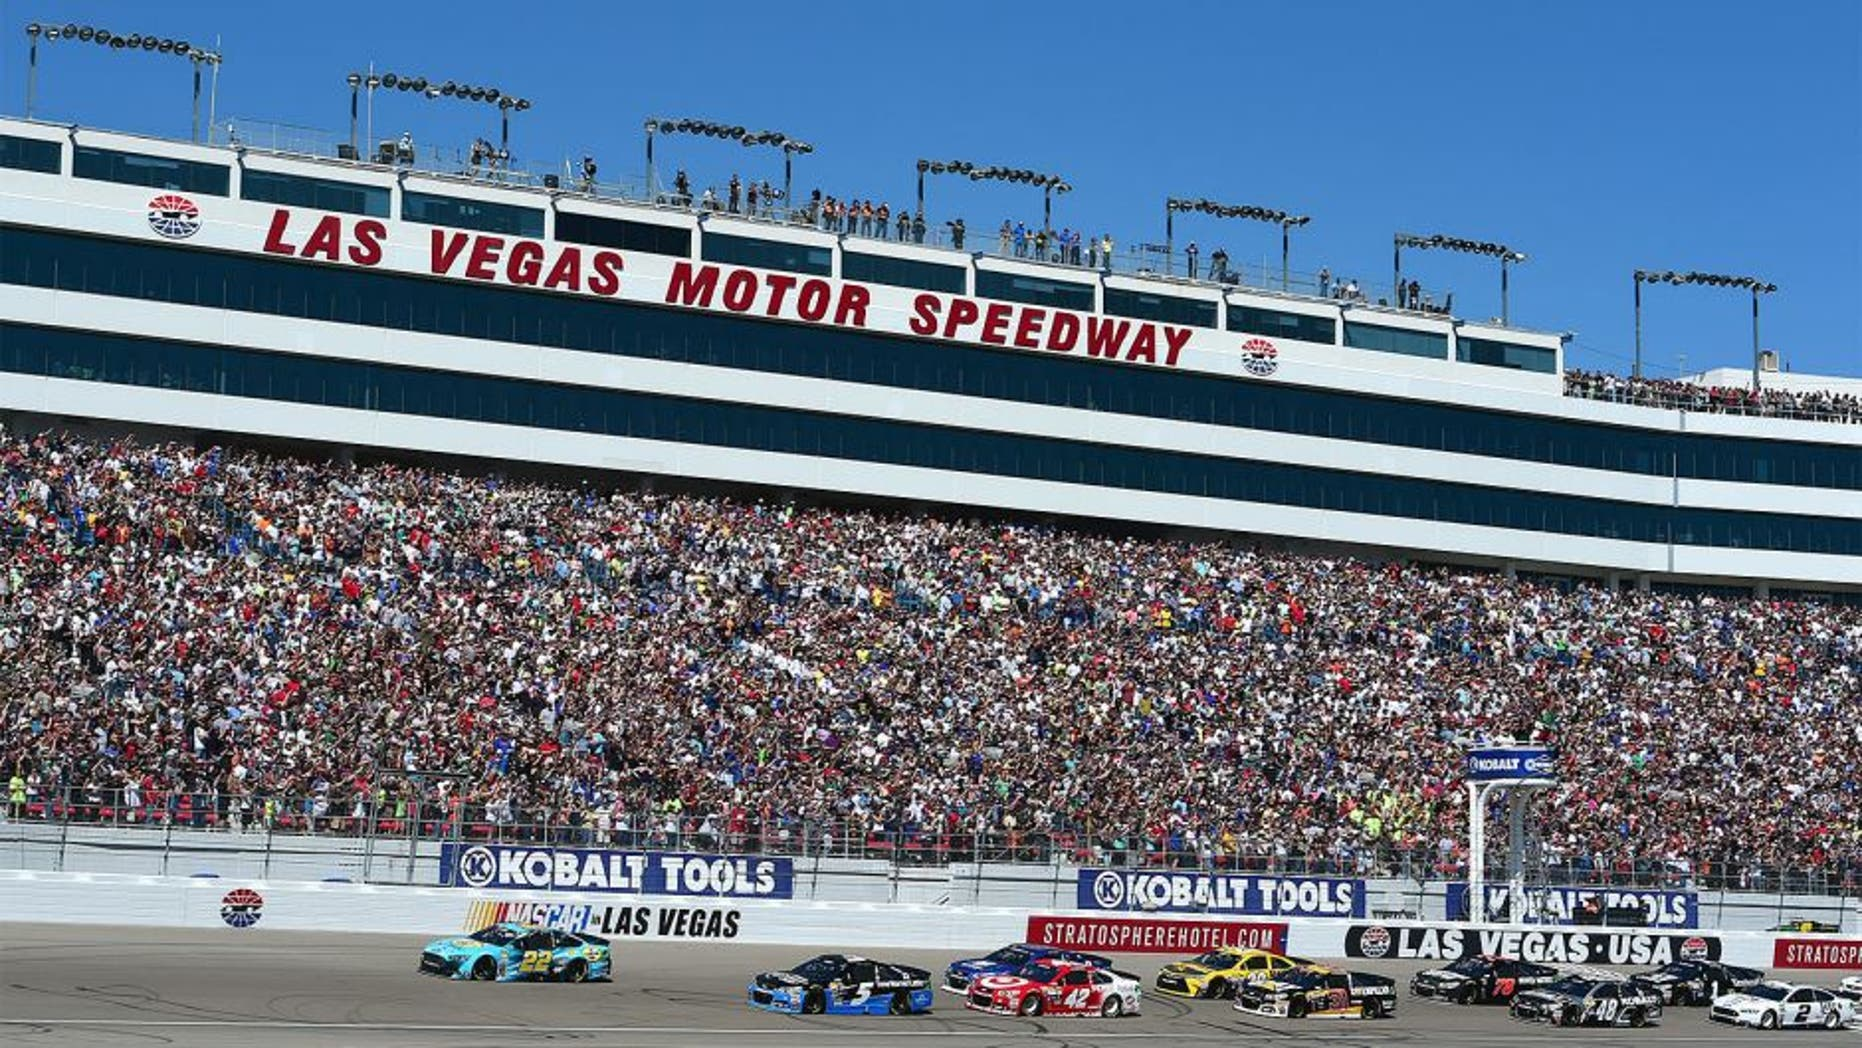 LAS VEGAS, NV - MARCH 08: General view as Joey Logano, driver of the #22 Pennzoil Platinum Ford, and Kasey Kahne, driver of the #5 Time Warner Cable Chevrolet, lead the field to start the NASCAR Sprint Cup Series Kobalt 400 at Las Vegas Motor Speedway on March 8, 2015 in Las Vegas, Nevada. (Photo by Robert Laberge/Getty Images)